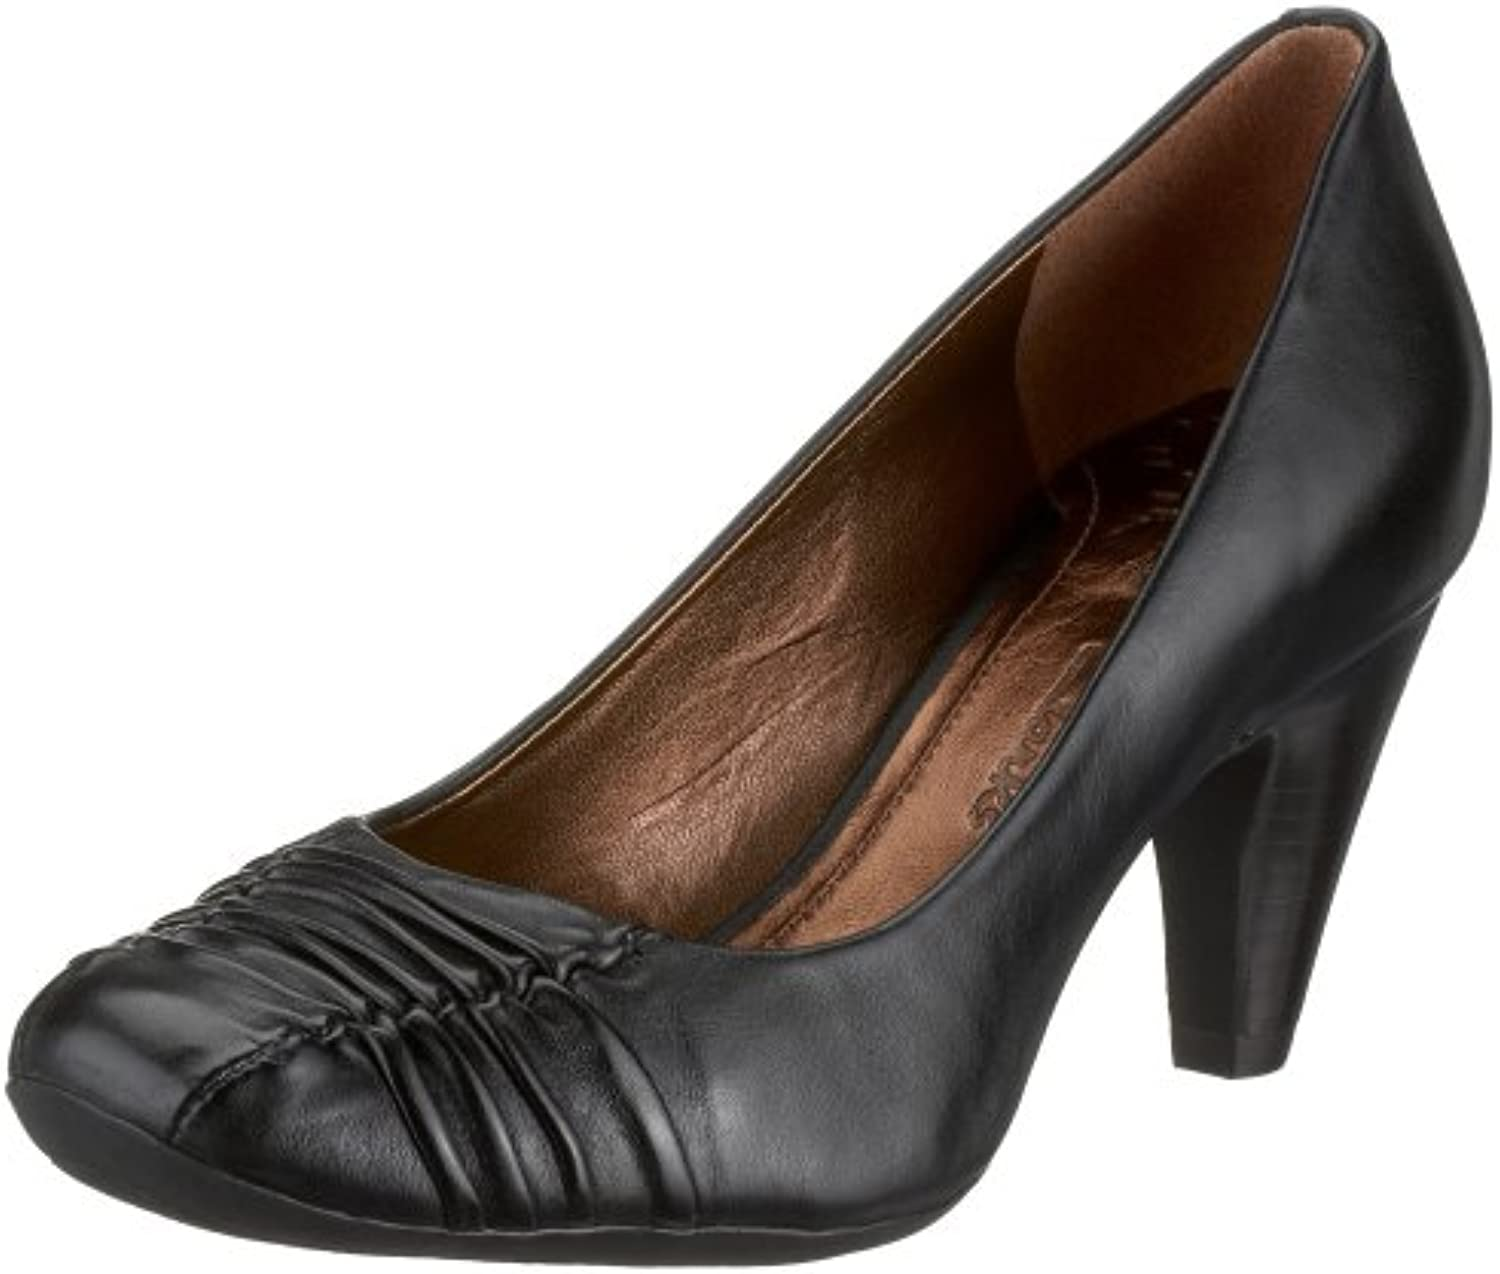 Clarks 2032 Glaze 2032 Clarks 3409, escarpin femme, noir, Double (Black Leather)B001ECRLBYParent 3e3c35